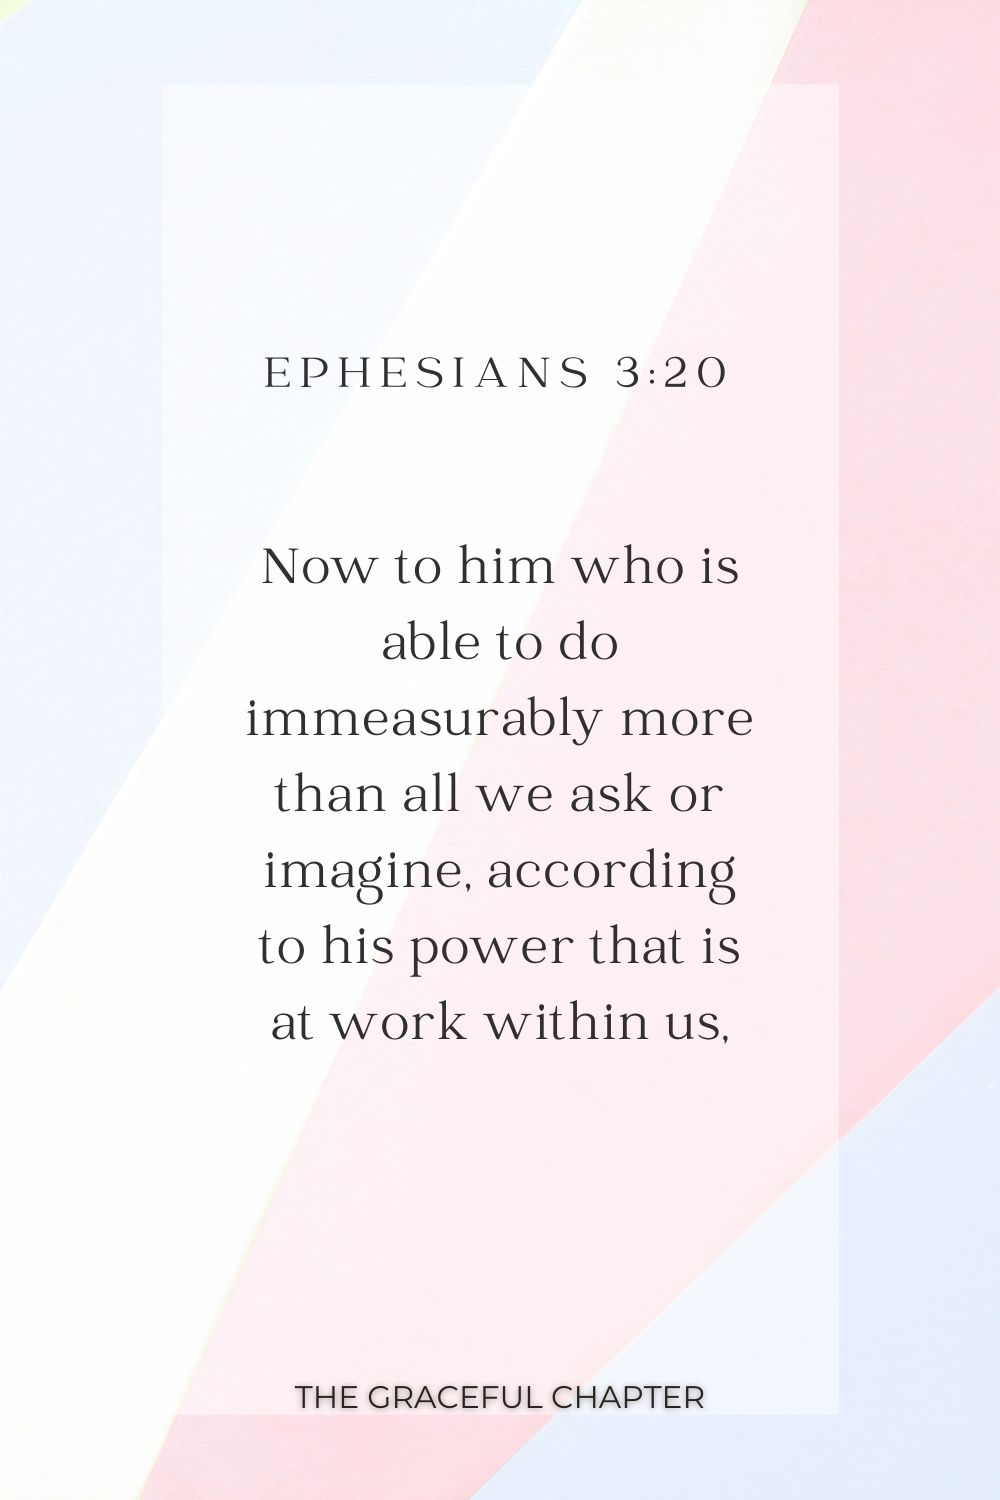 Now to him who is able to do immeasurably more than all we ask or imagine, according to his power that is at work within us, Ephesians 3:20